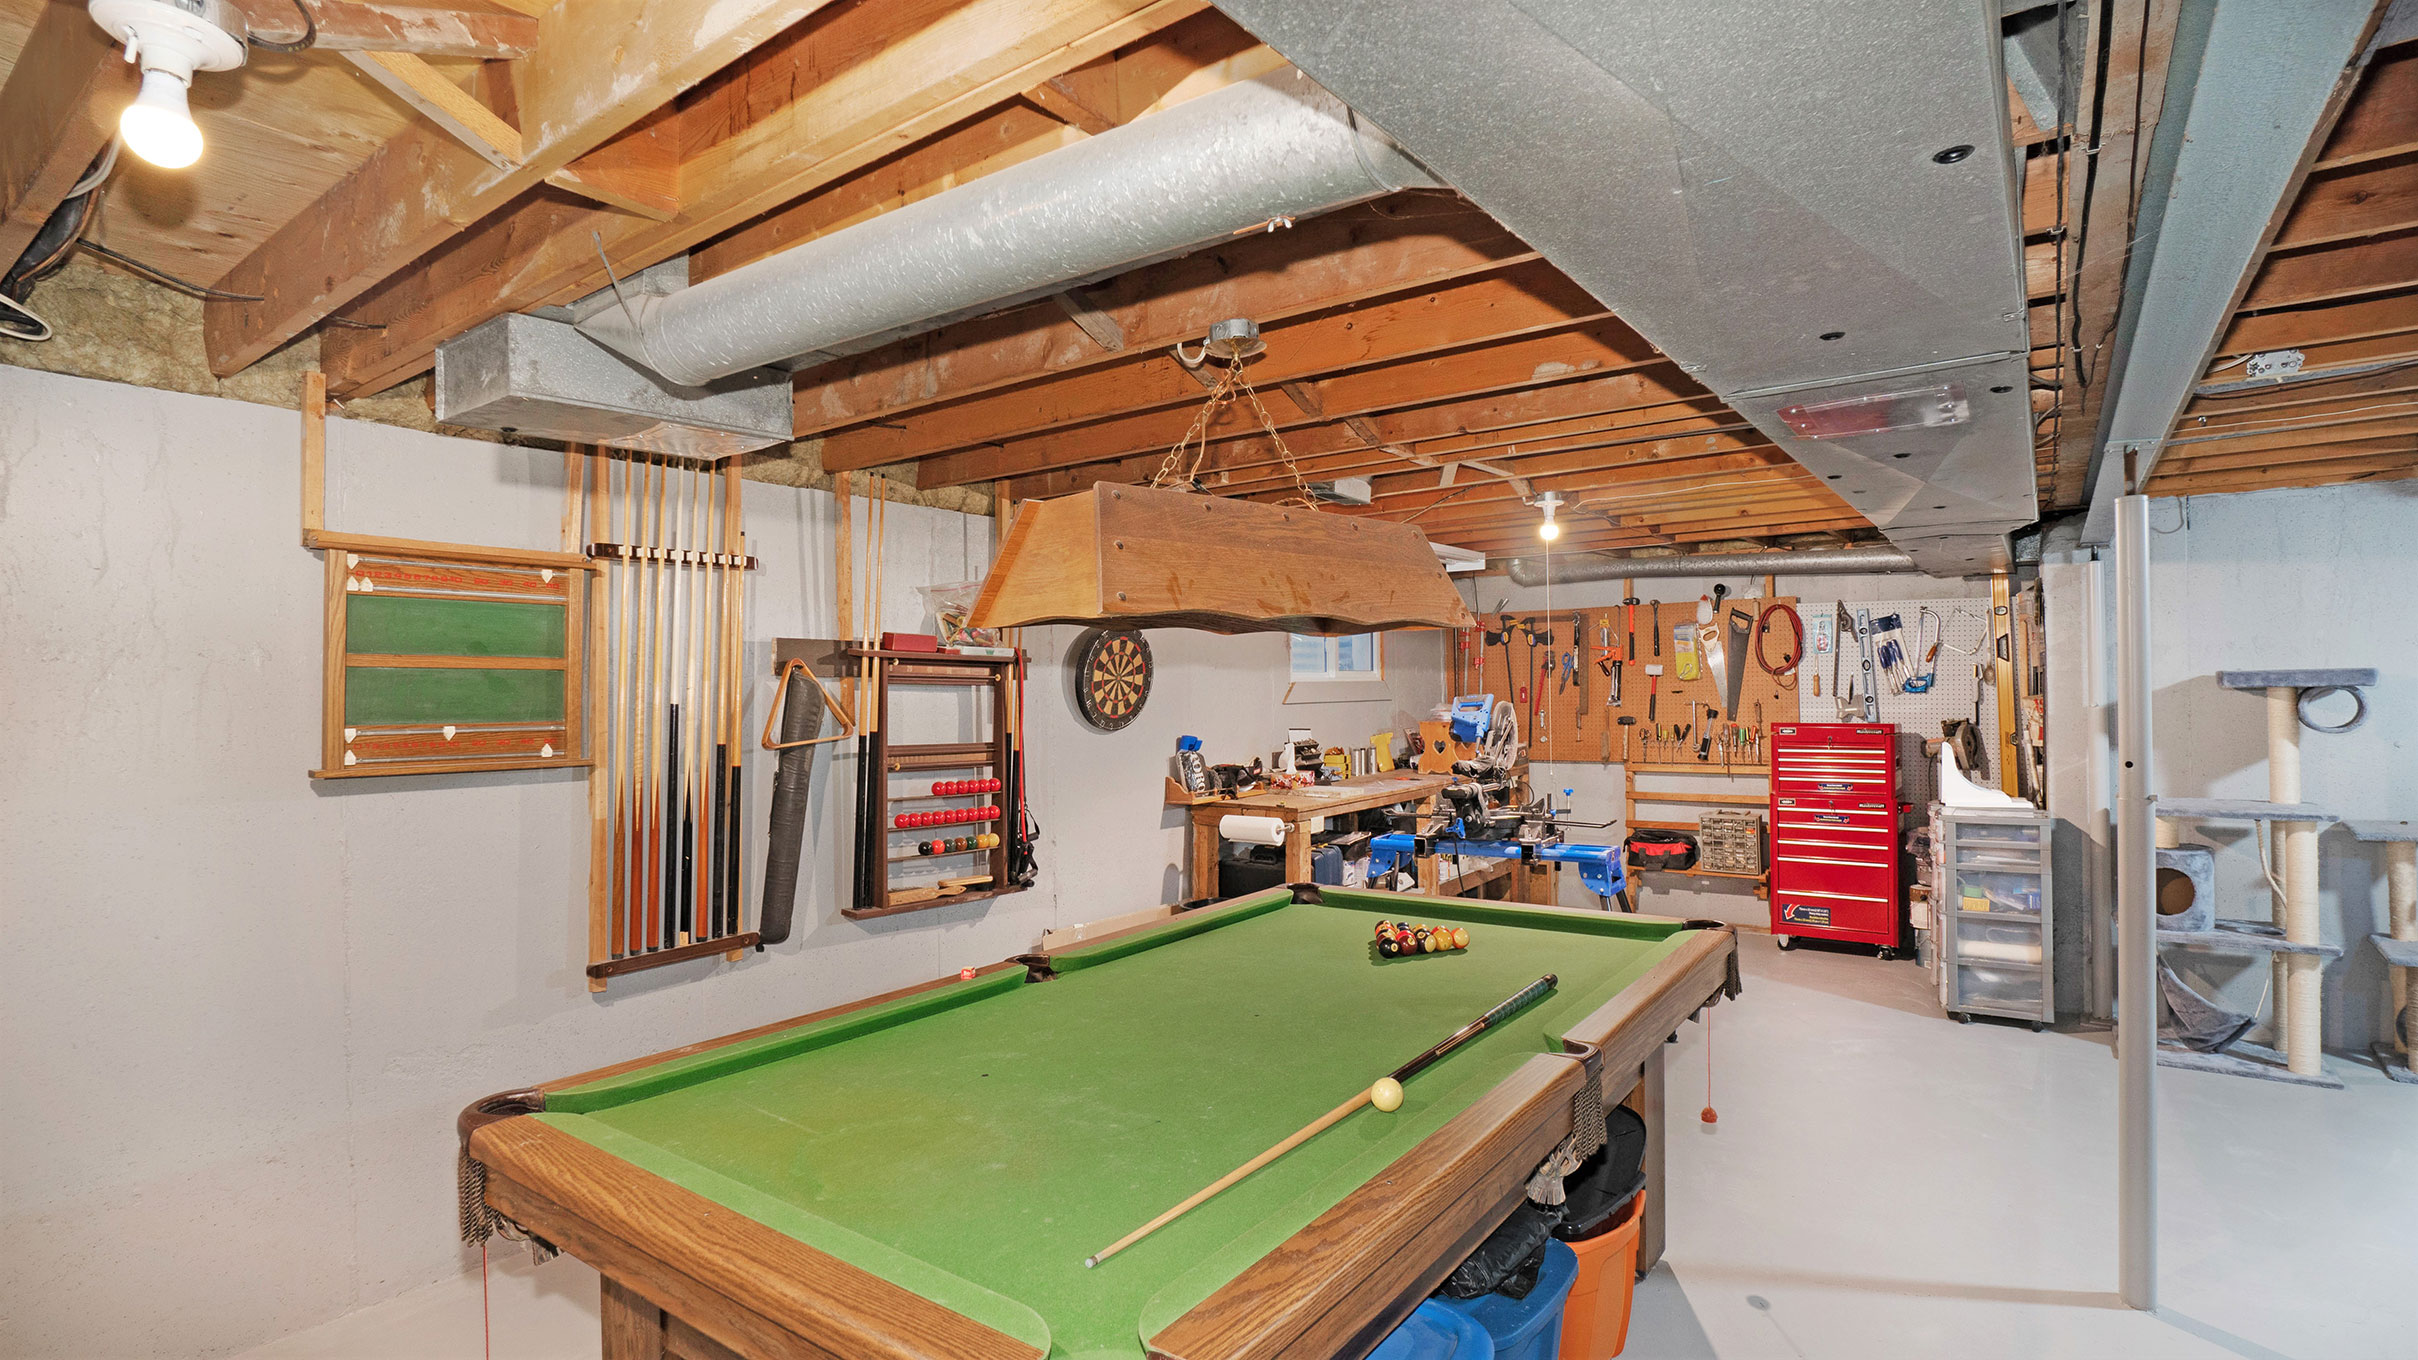 Games Room and Workshop currently, but the options are unlimited!